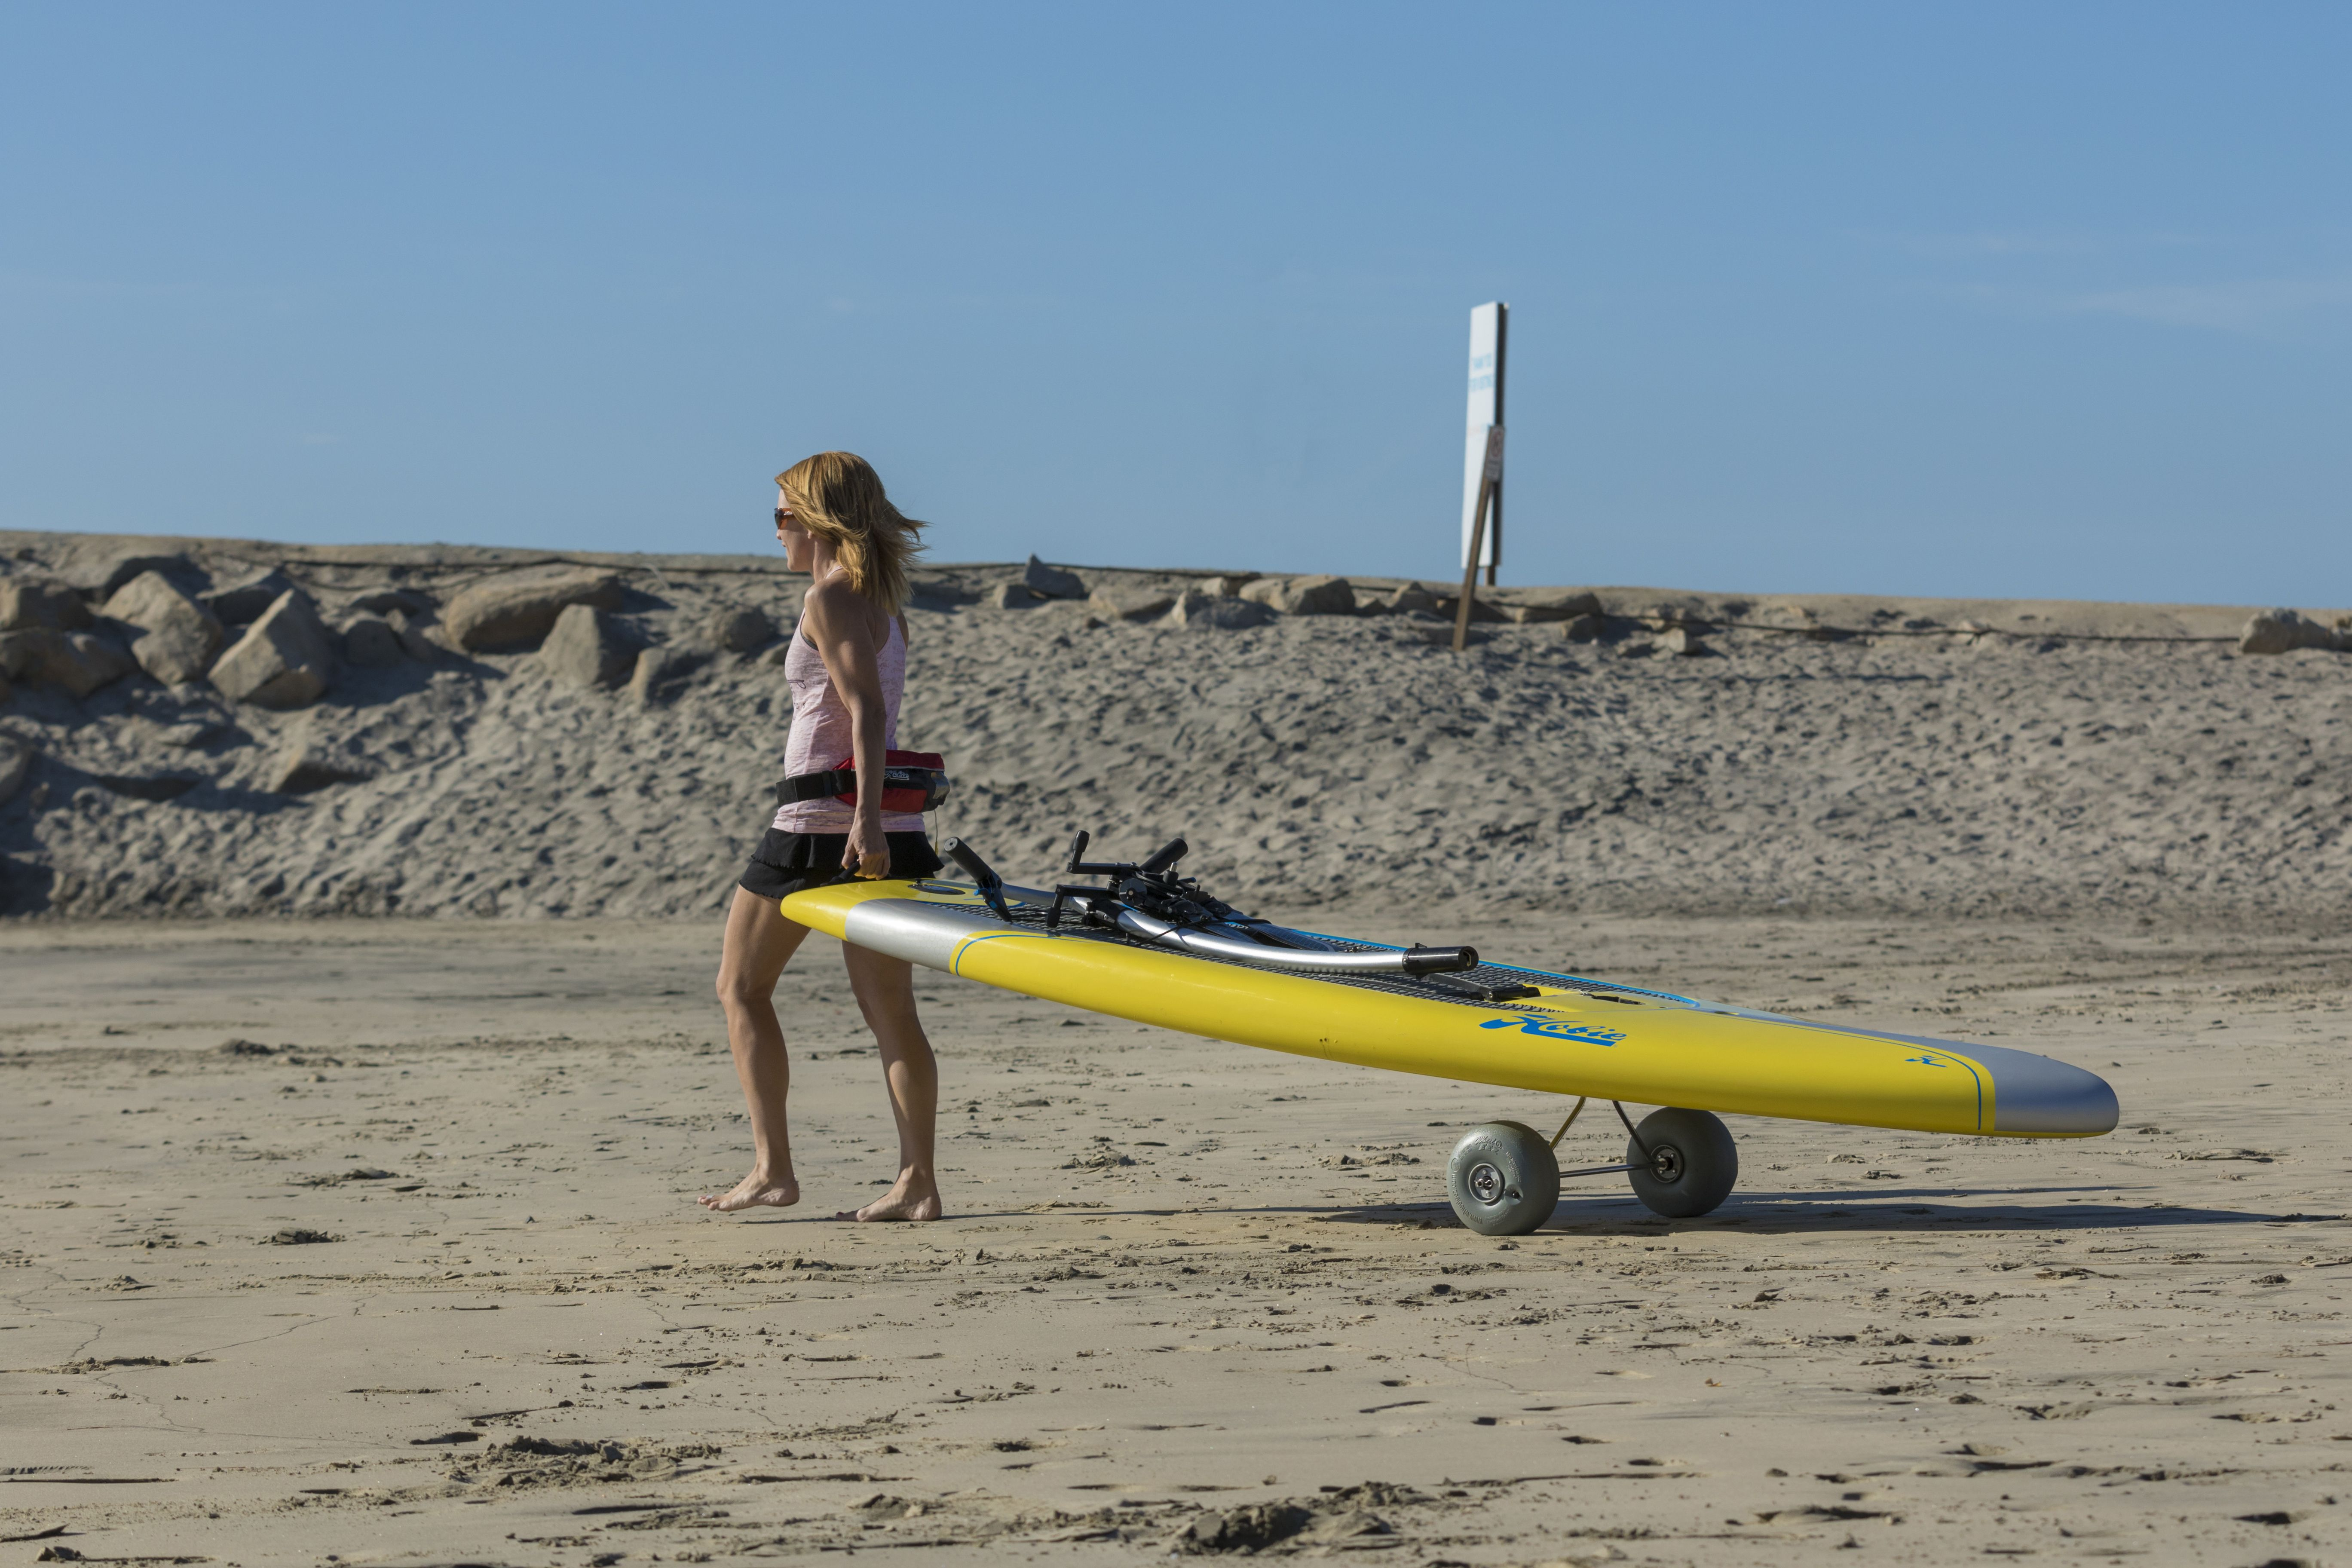 So Easy To Transport Hobie S Eclipse Sup Surfer Workout Standup Paddle Indoor Workout